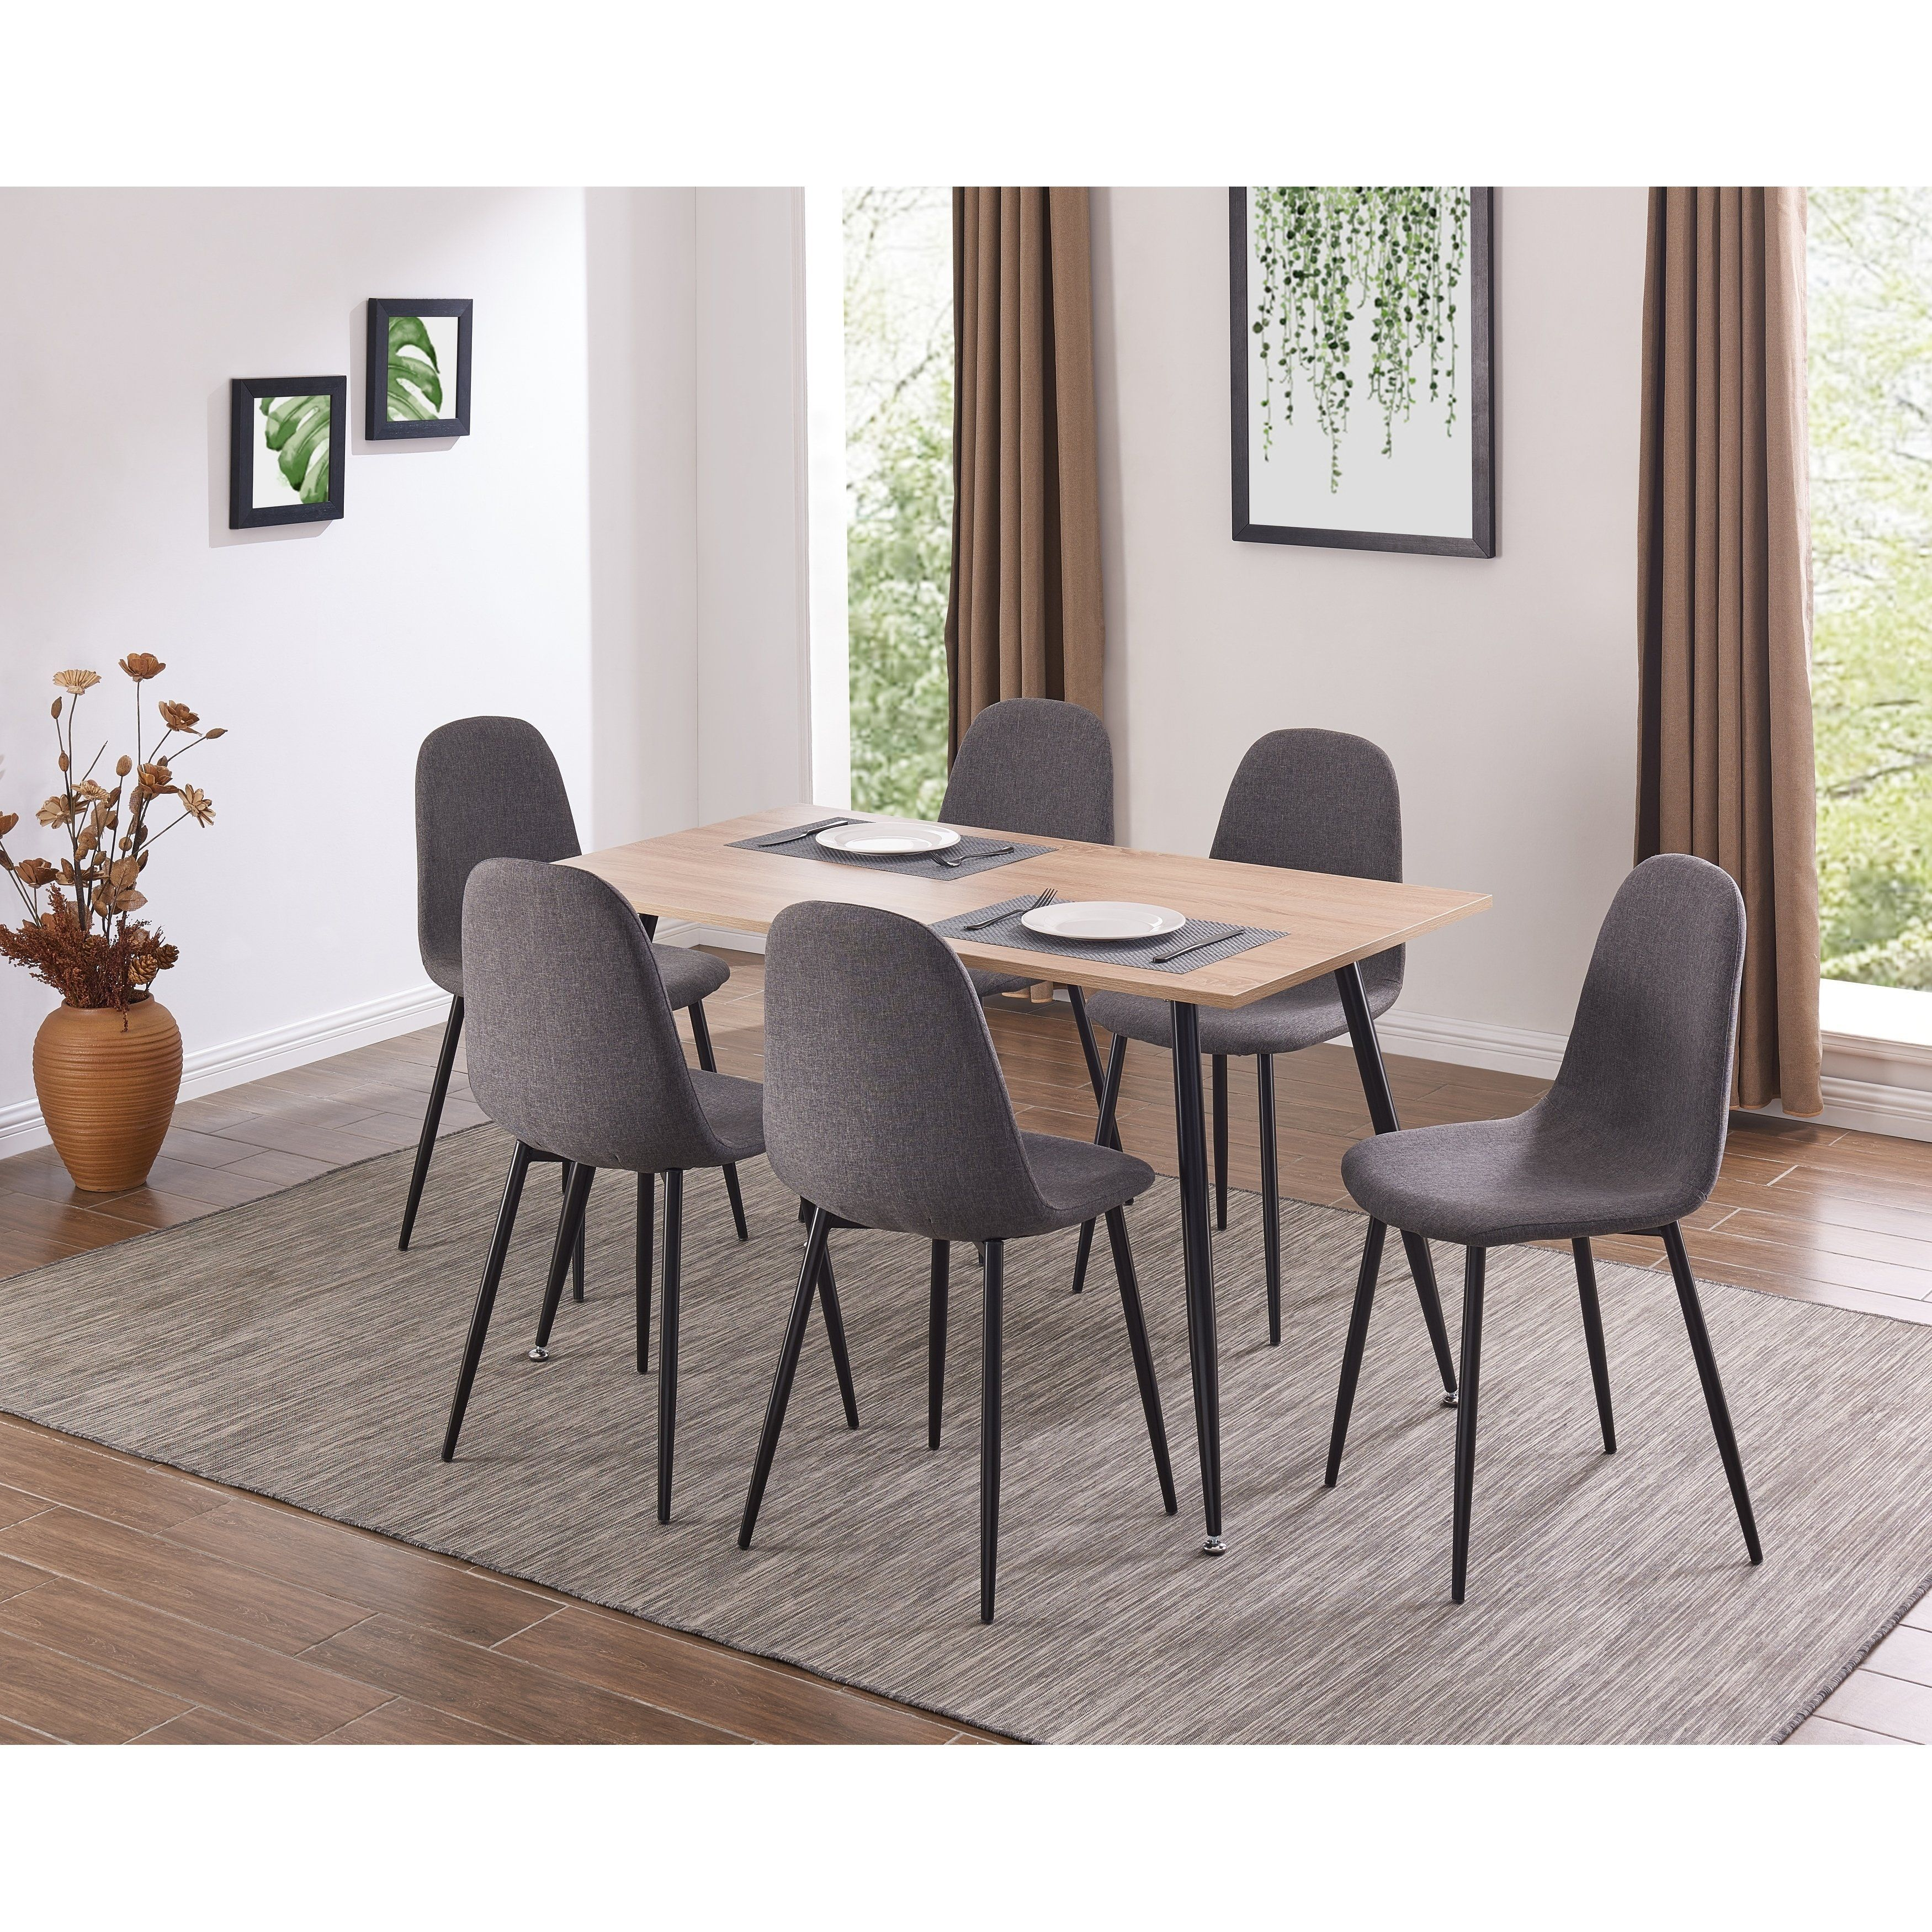 Ids Simplistic Style Mdf Dining Table And Heavy Duty Metal